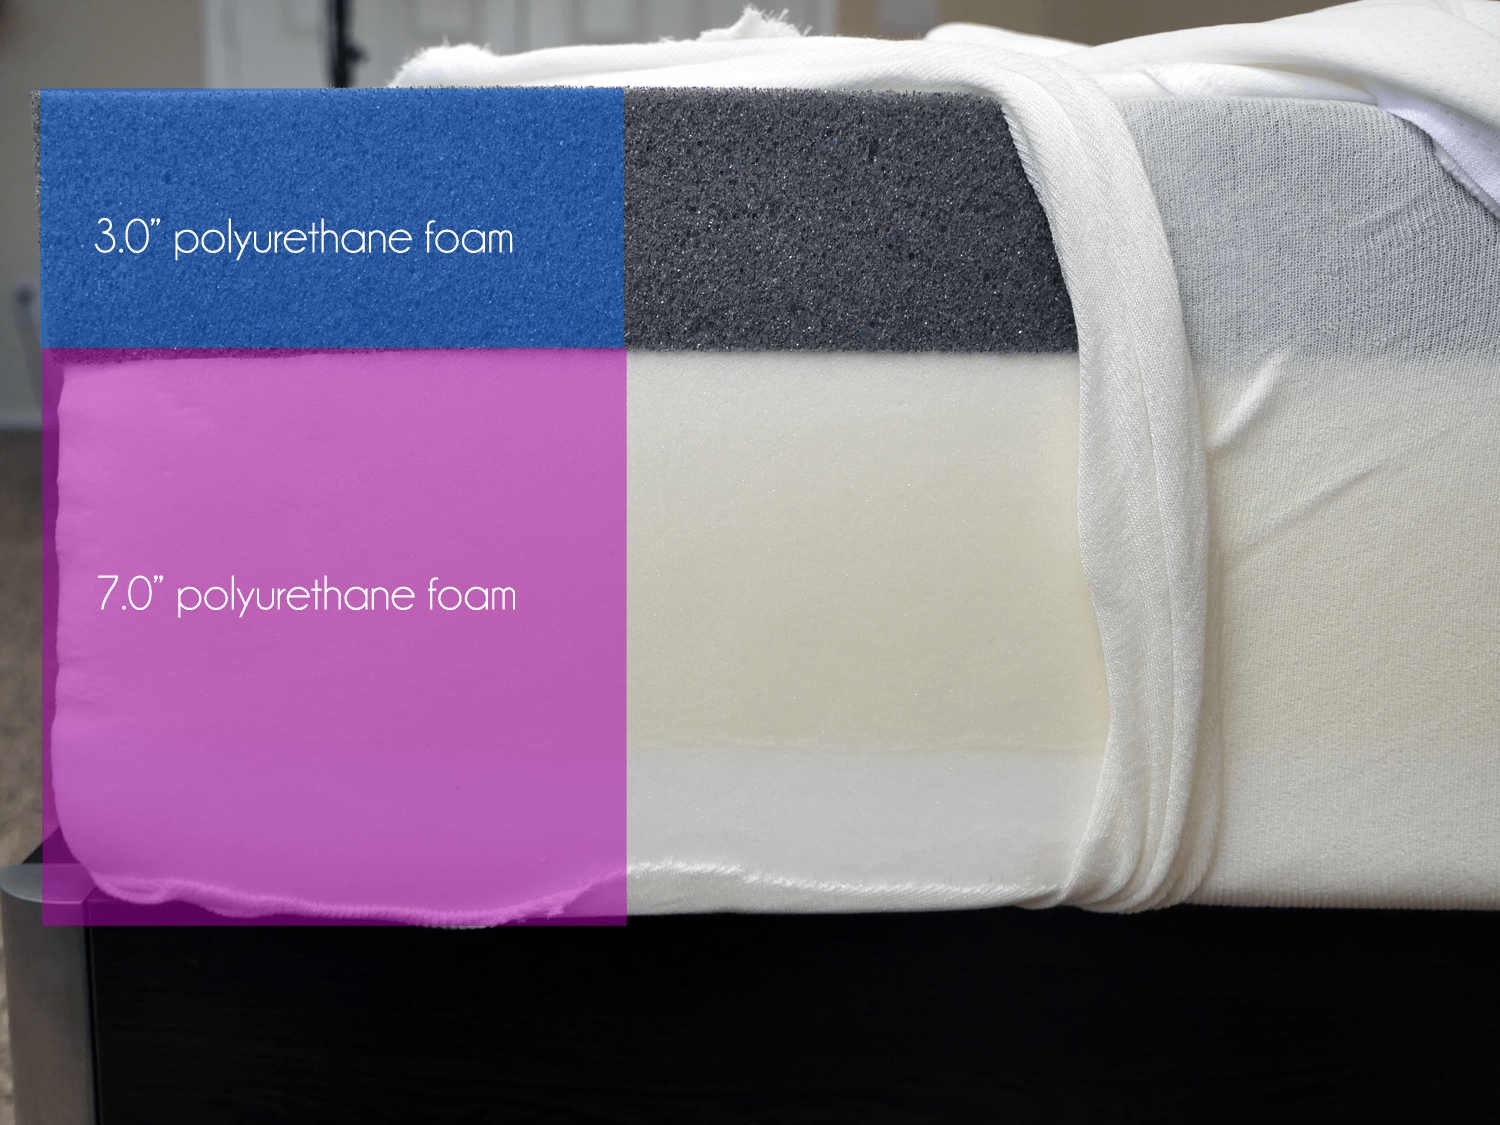 tuft-and-needle-mattress-foam-layers Tuft and Needle vs. Yogabed Mattress Review